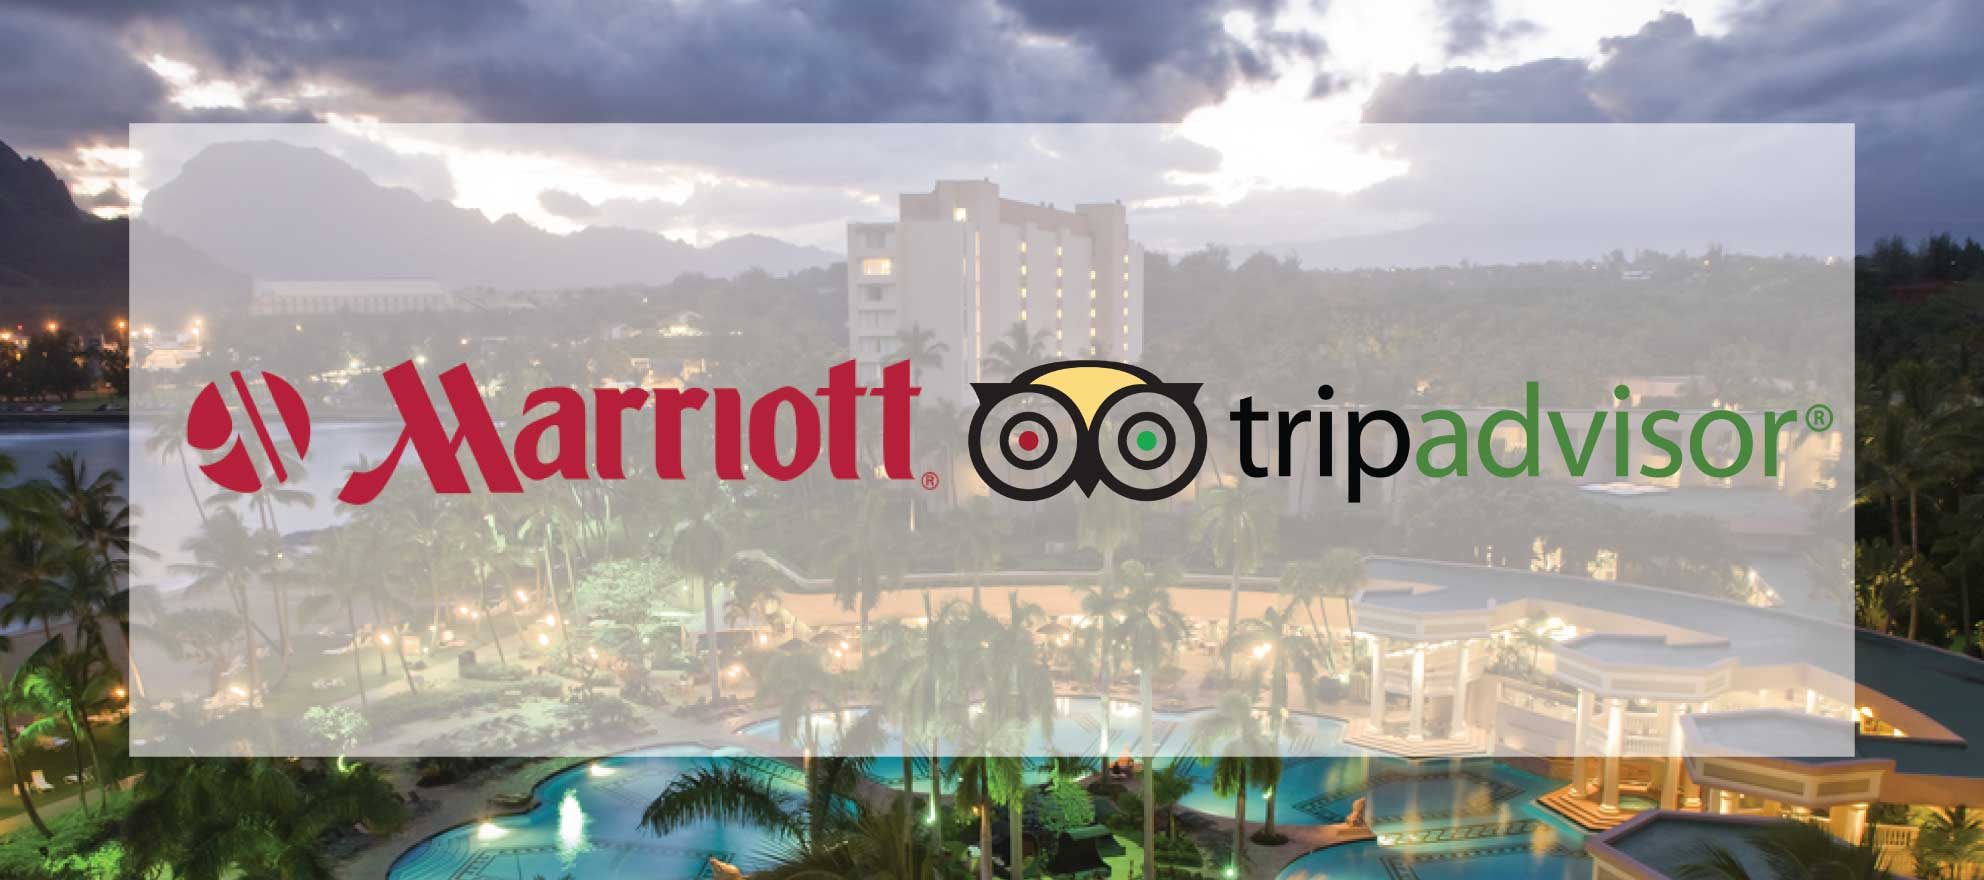 TripAdvisor and Marriott announce partnership to help boost both companies' growth